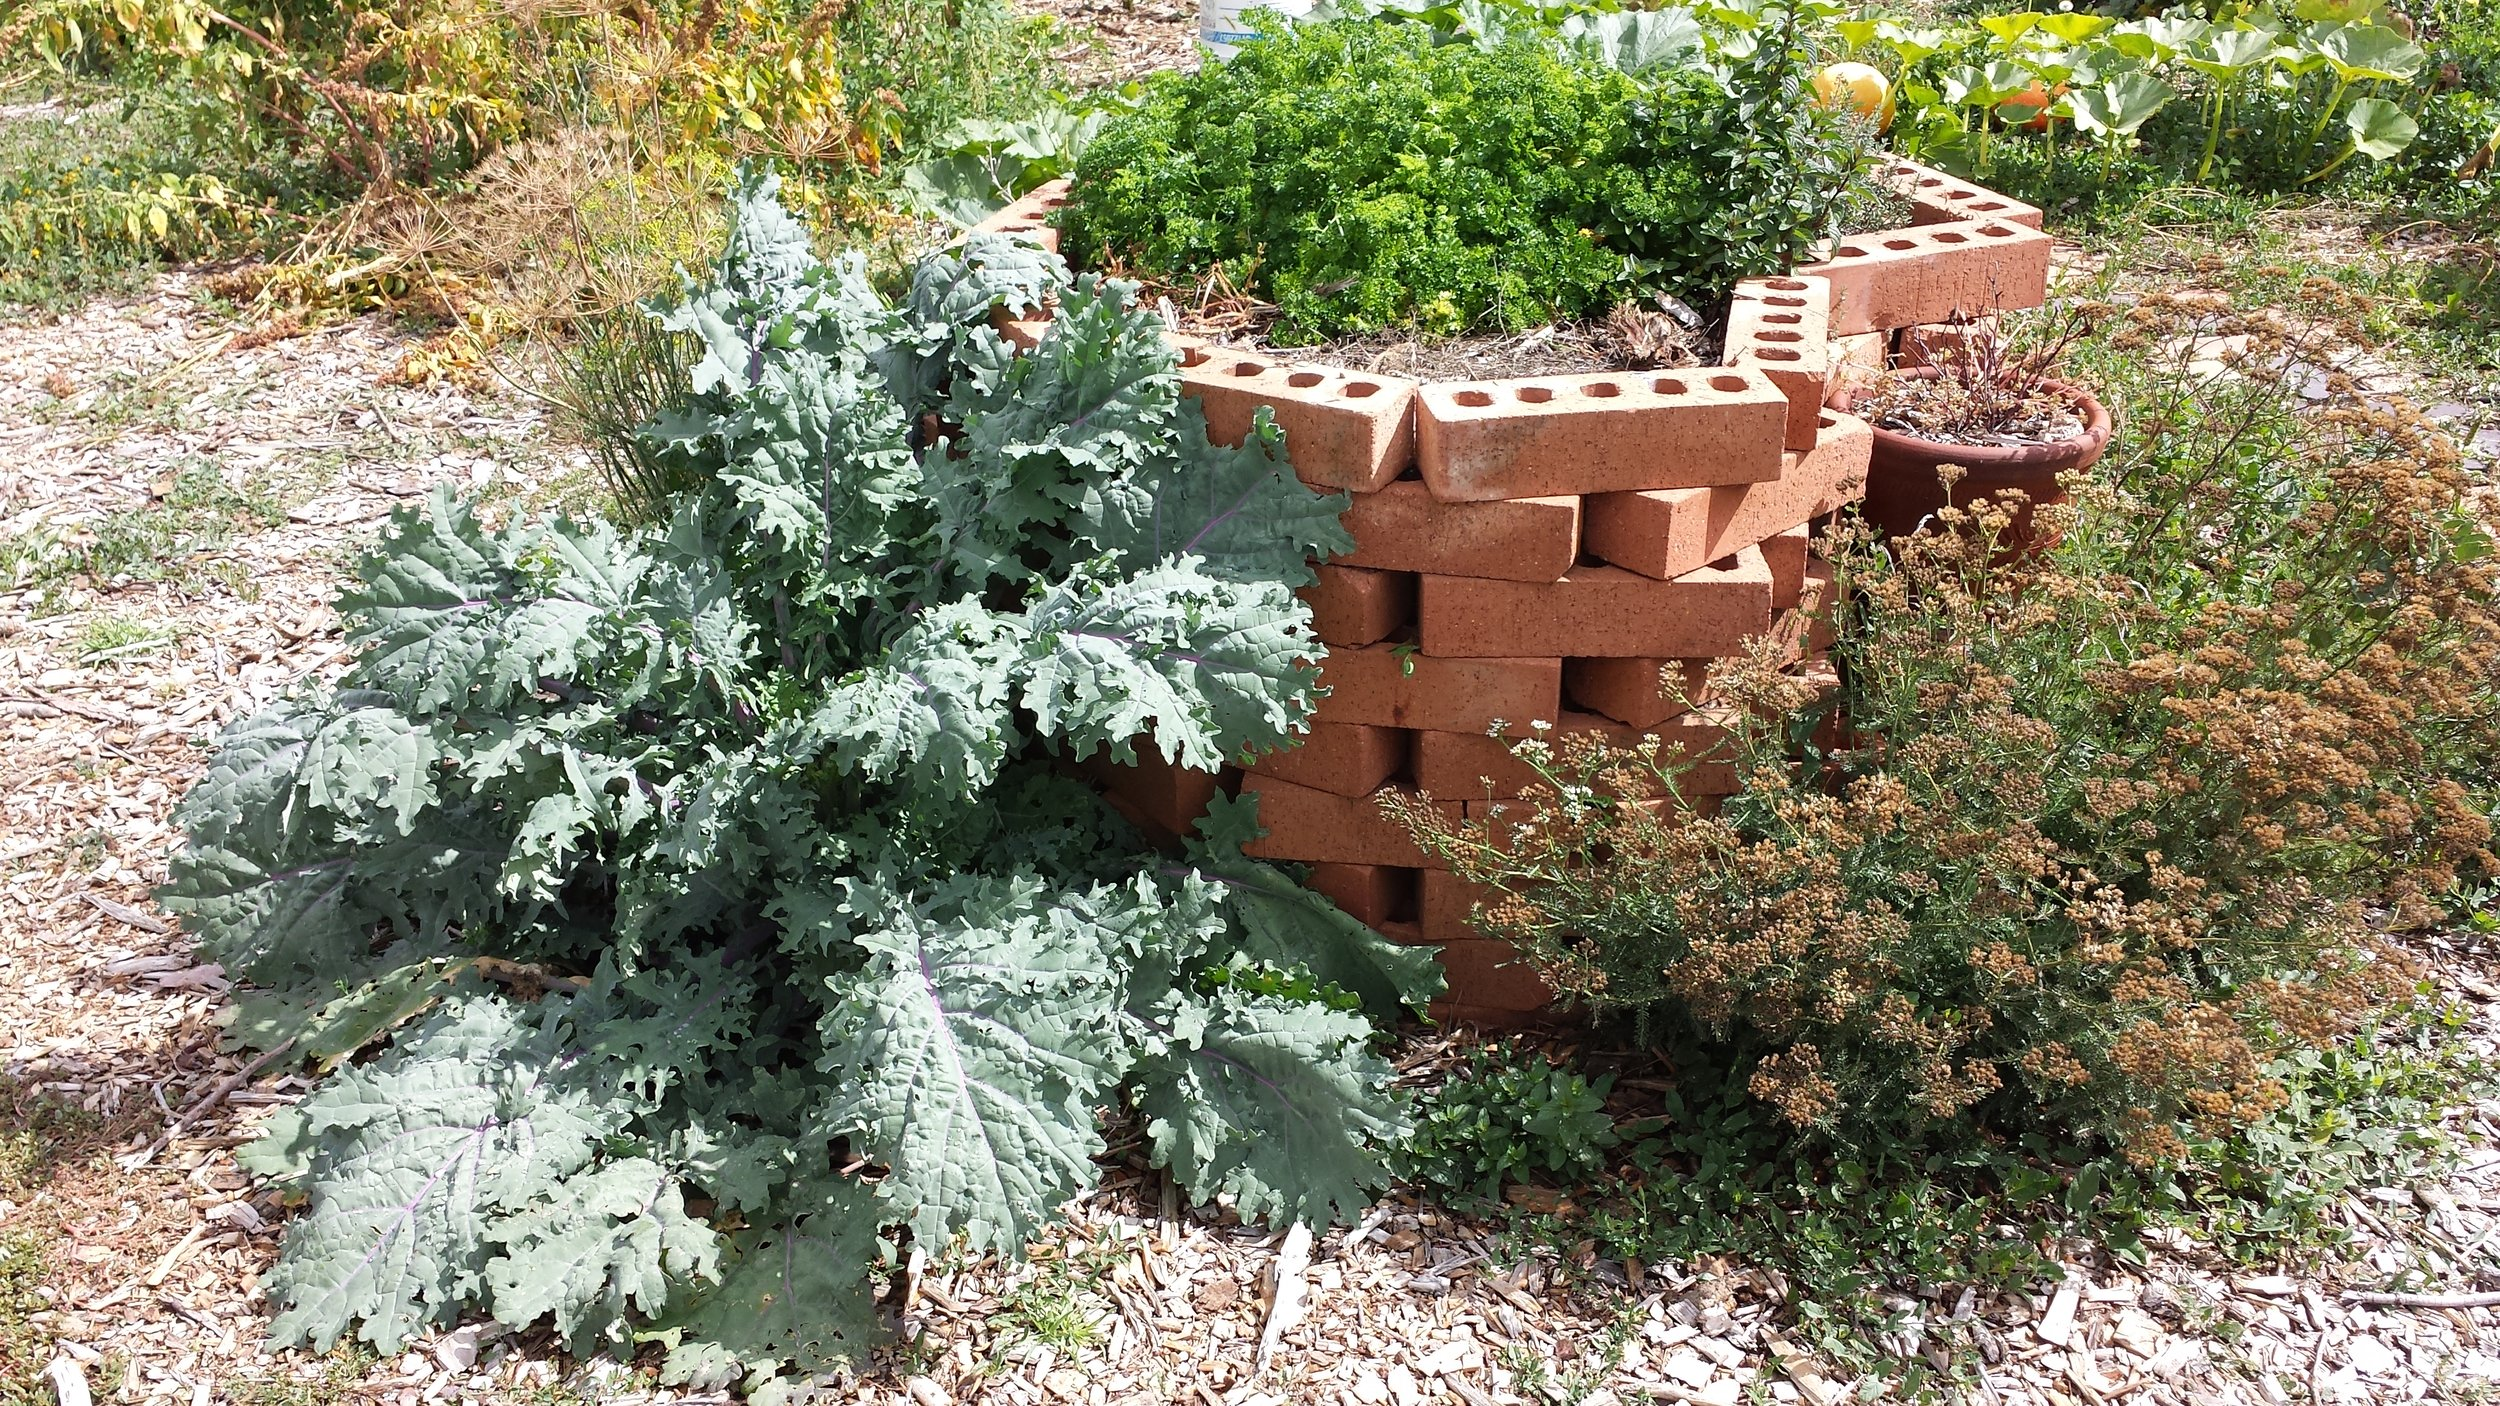 Dill, Kale, Parsley, Mint, and Yarrow, with Potatoes and Pumpkins in the background.